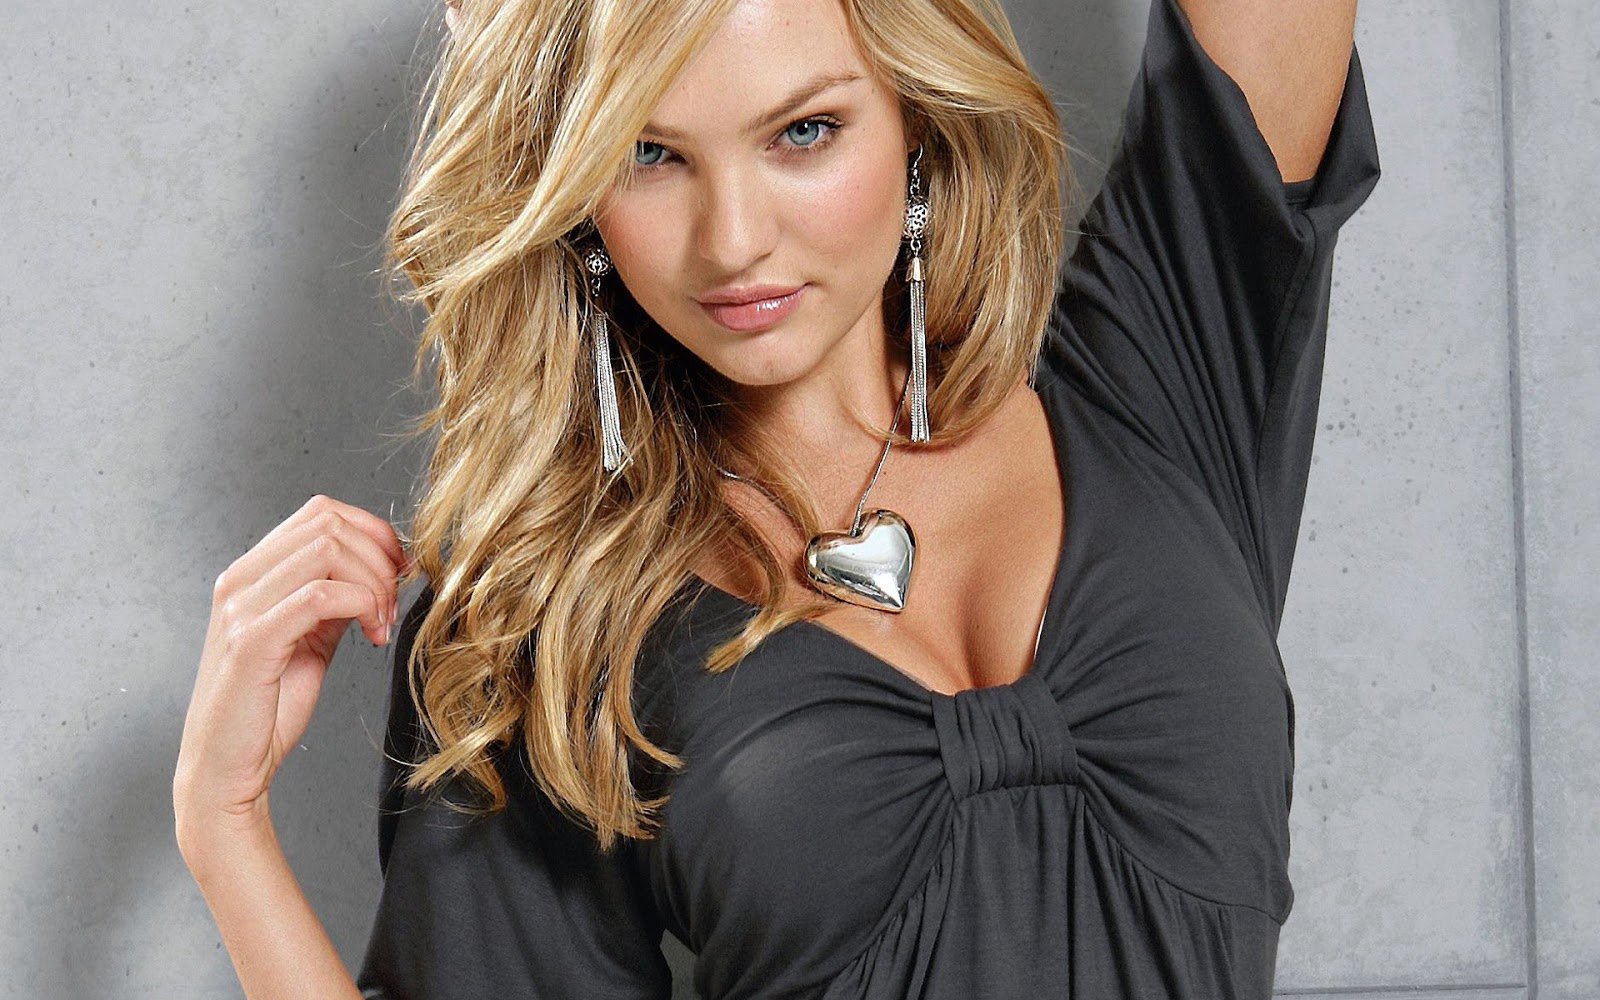 Candice Swanepoel Victorias Secret Model 2